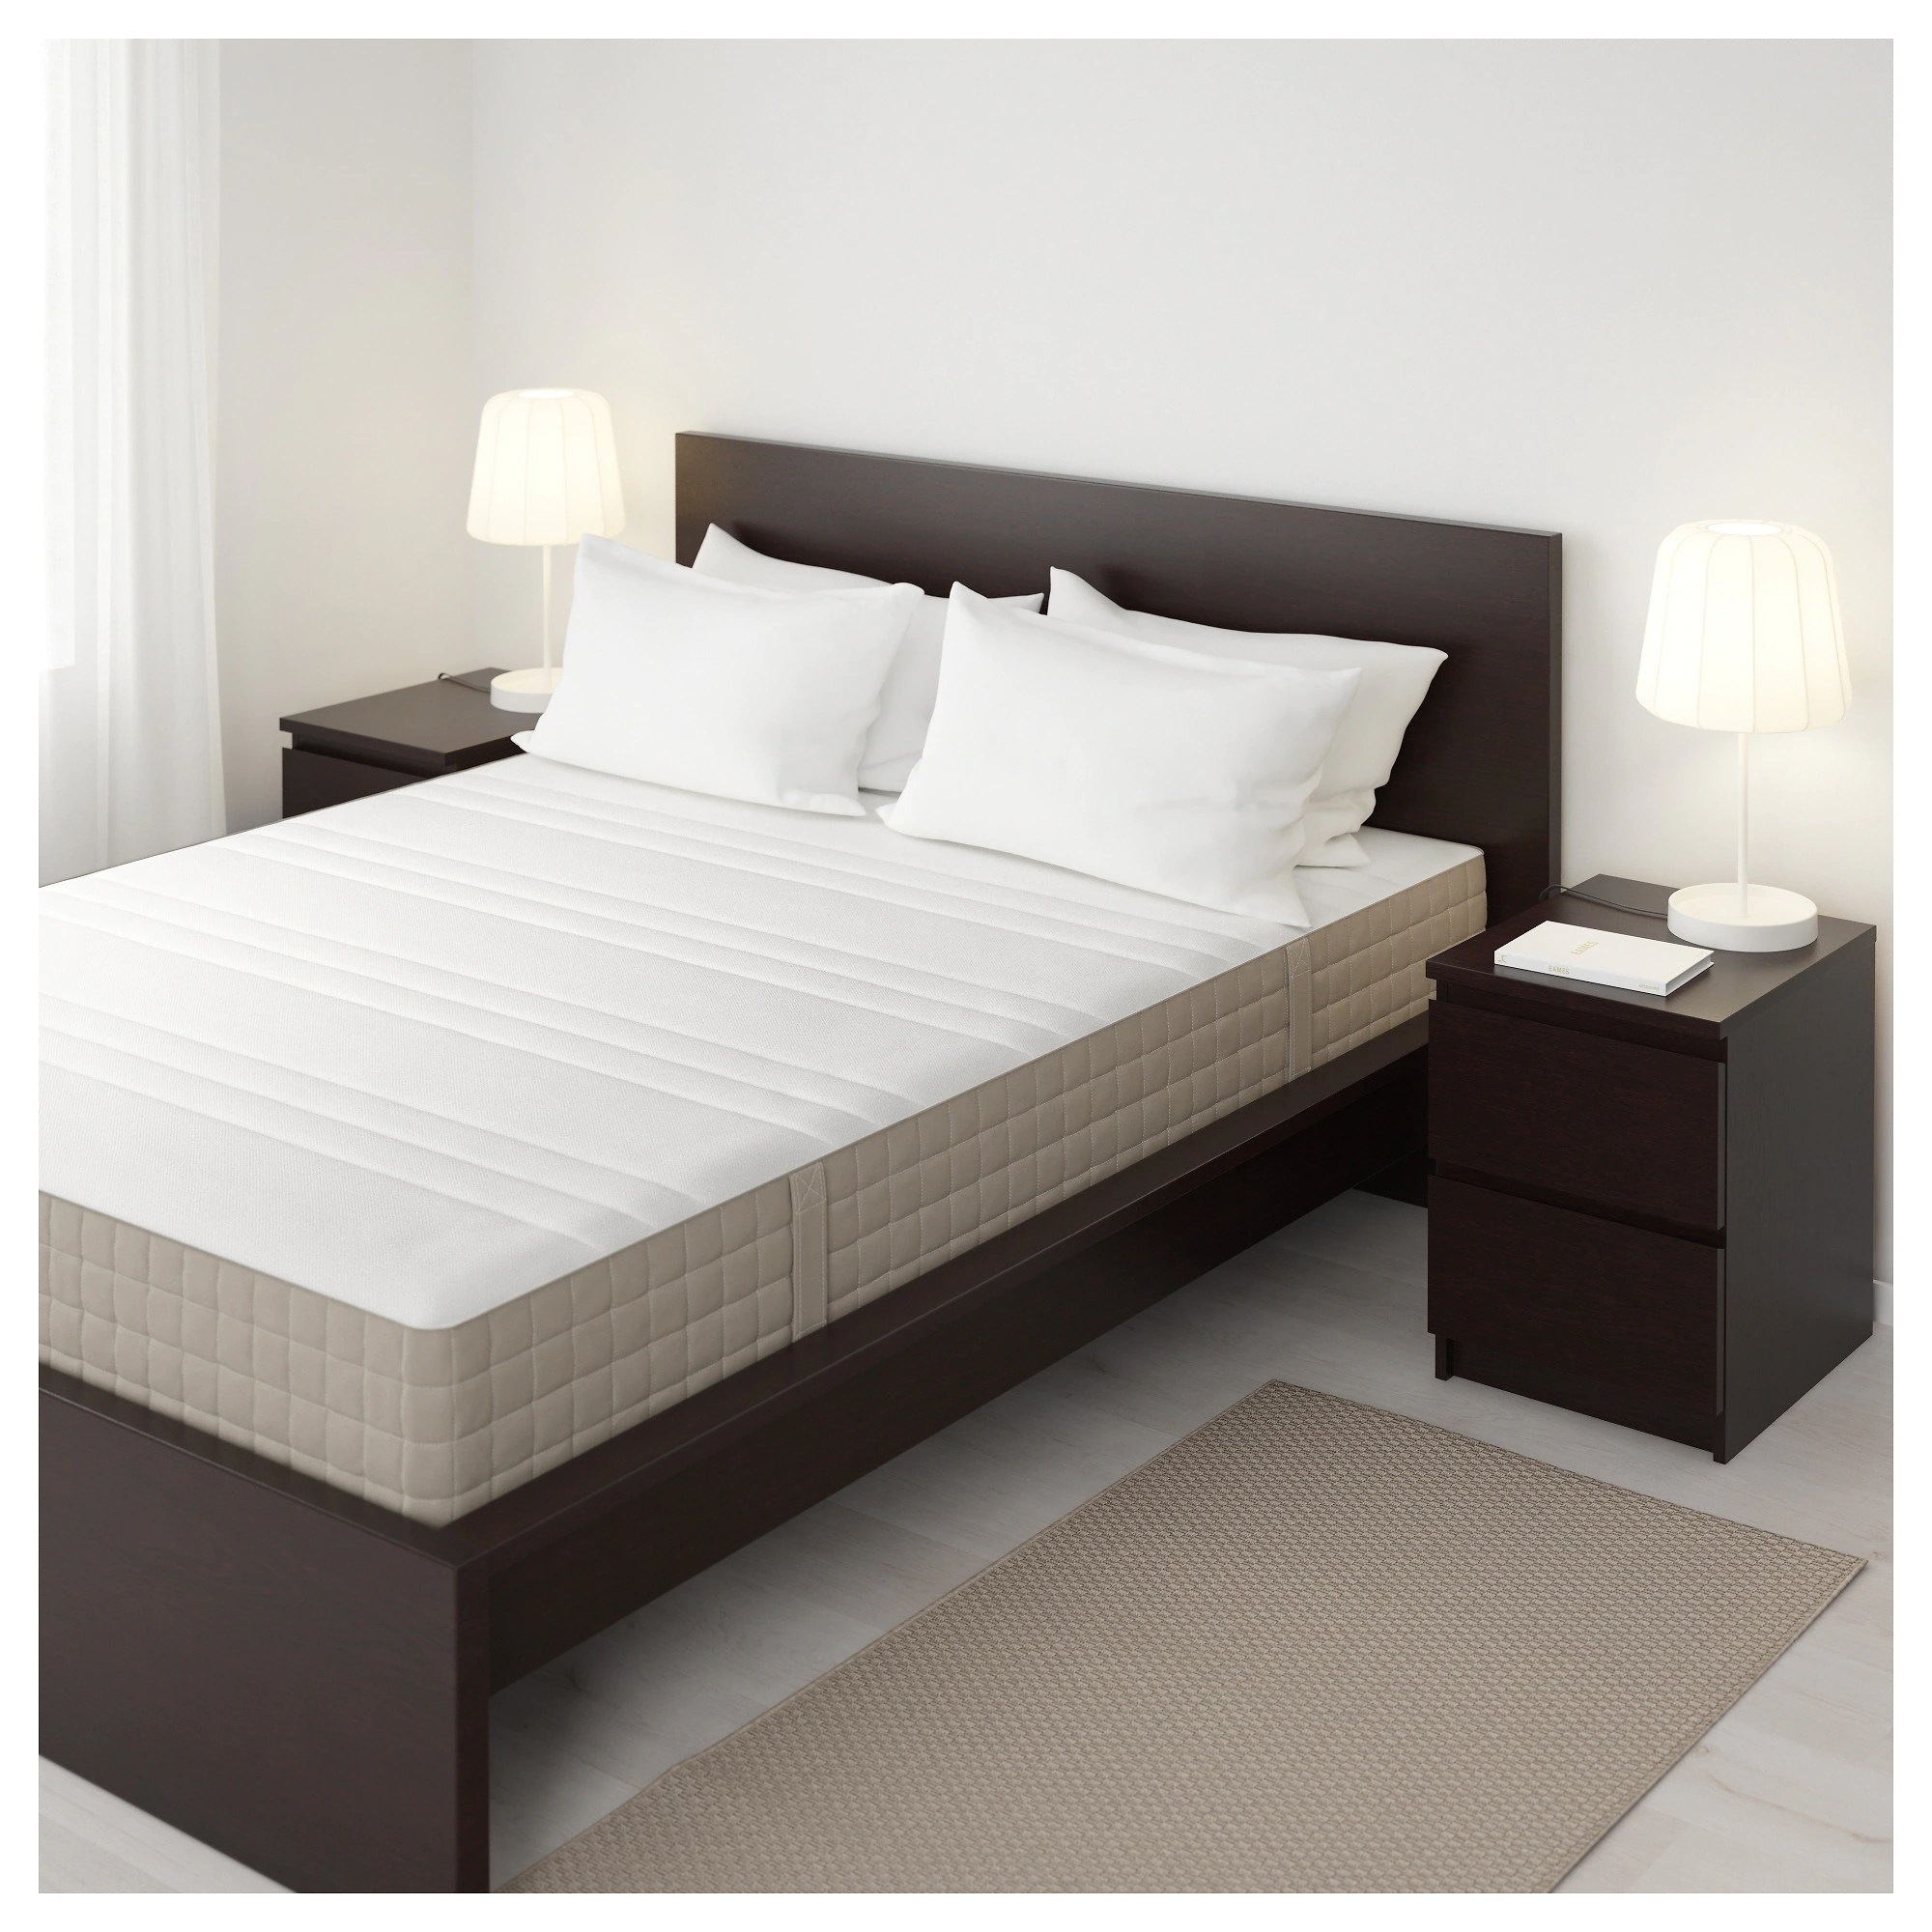 Bedroom Mattress Haugesund Spring Mattress Medium Firm Dark Beige